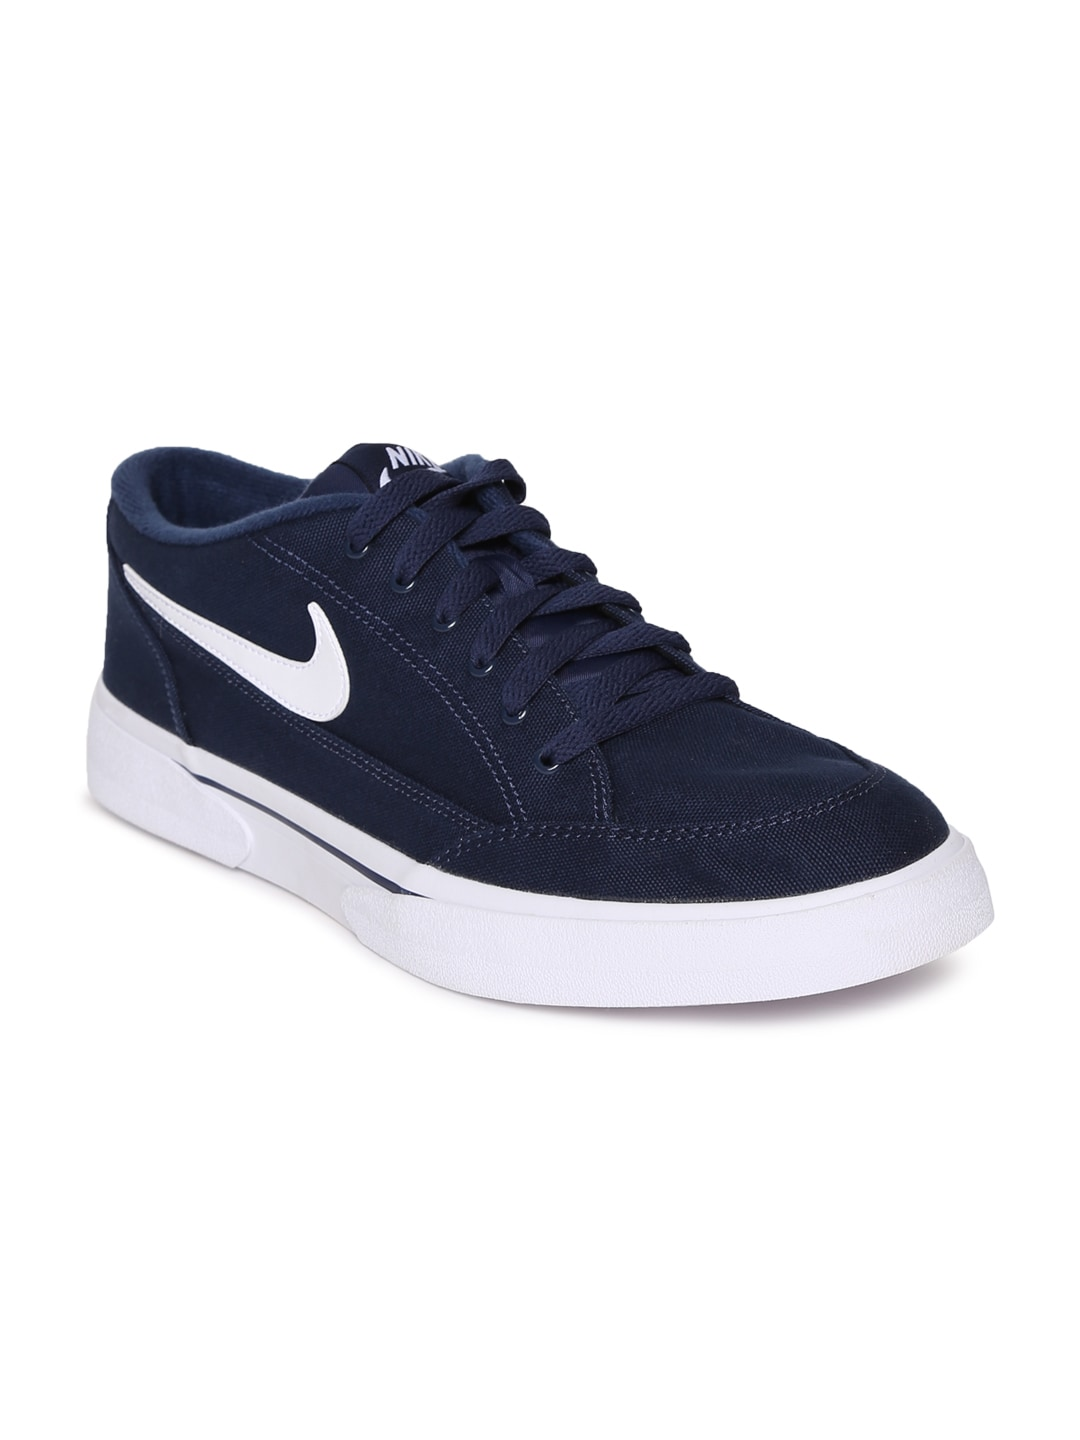 Nike Mens Shoes Online In India Buy OPXTkZui